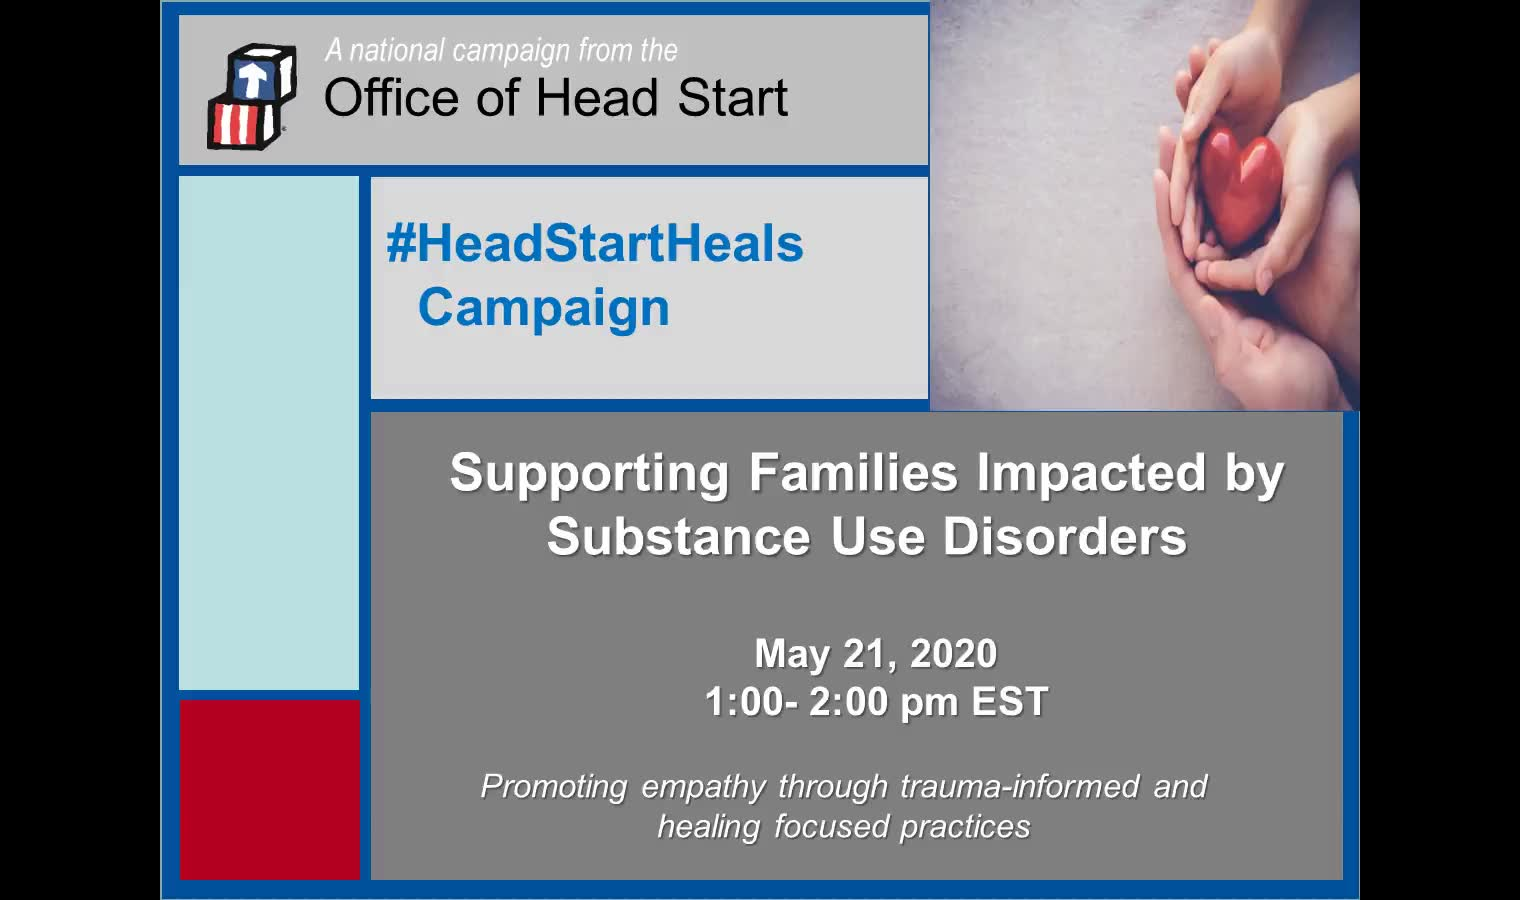 Supporting Families Impacted by Substance Use Disorders